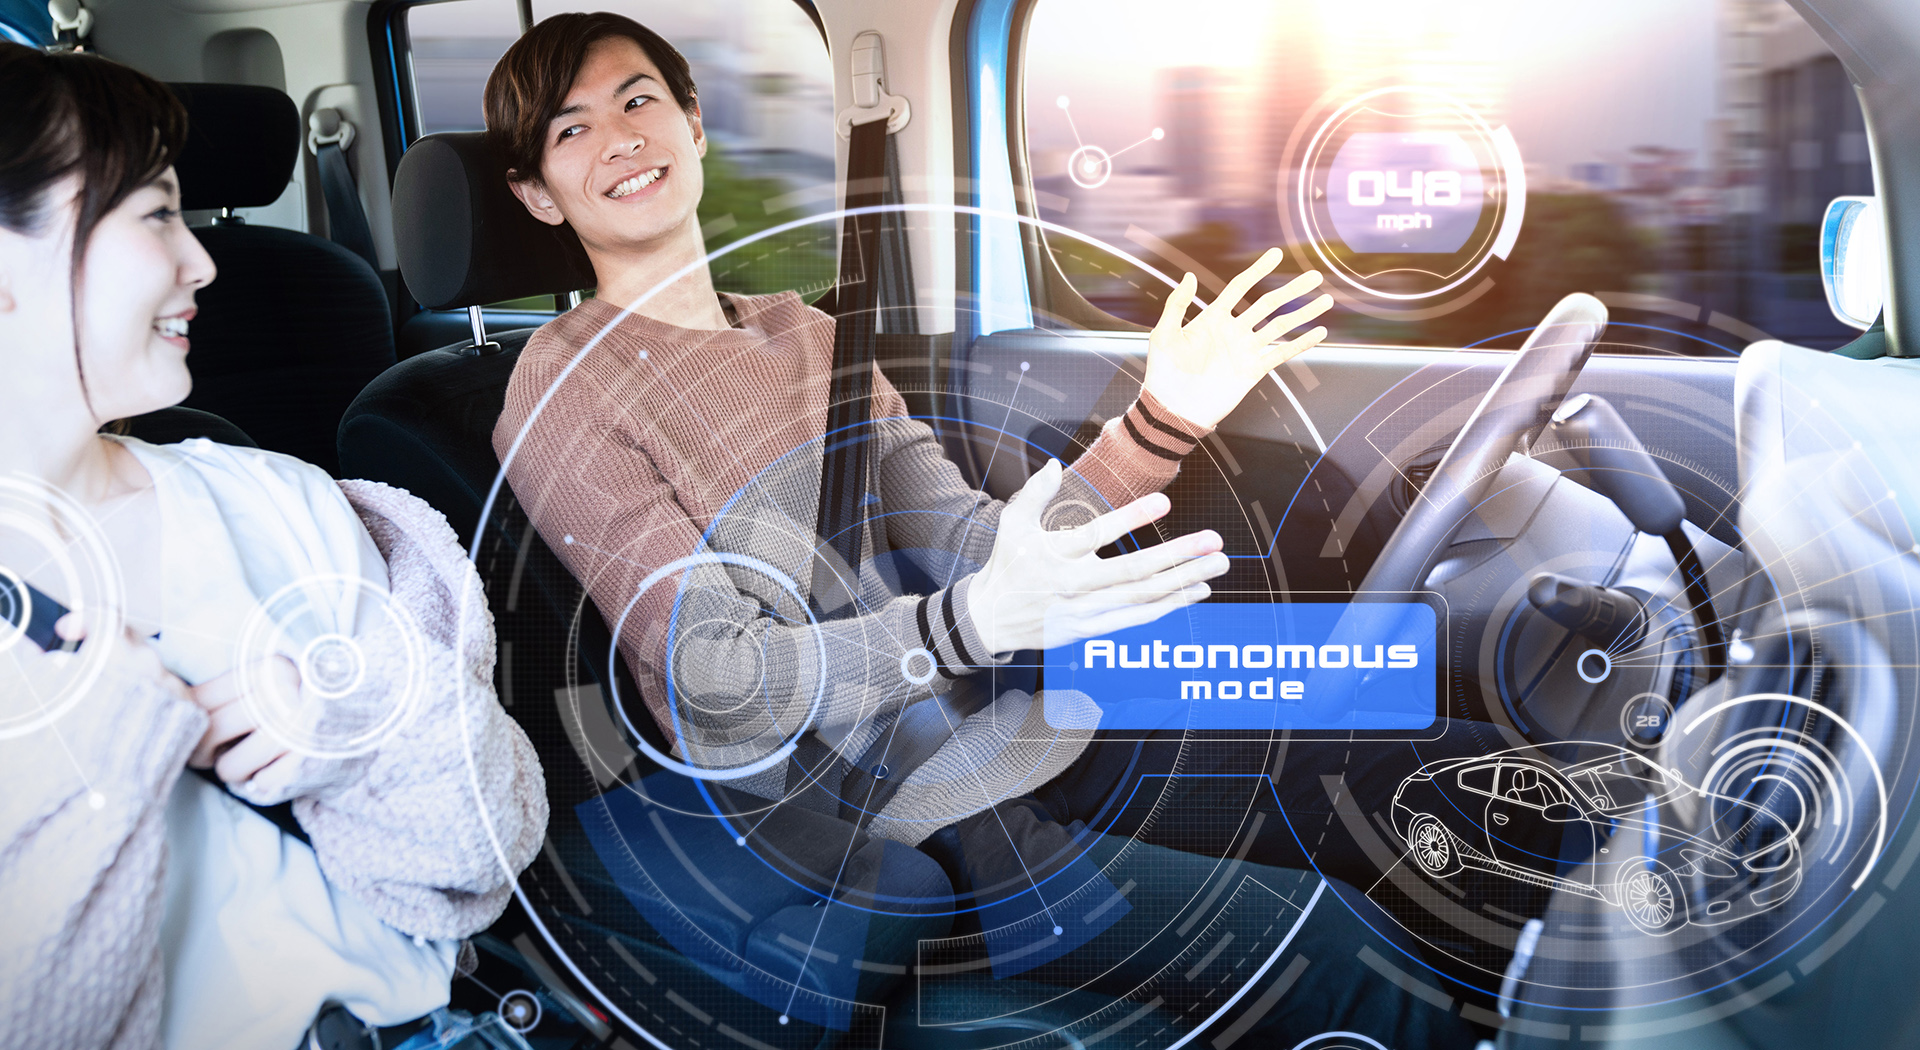 Consumer preferences in a world of smart, connected mobility